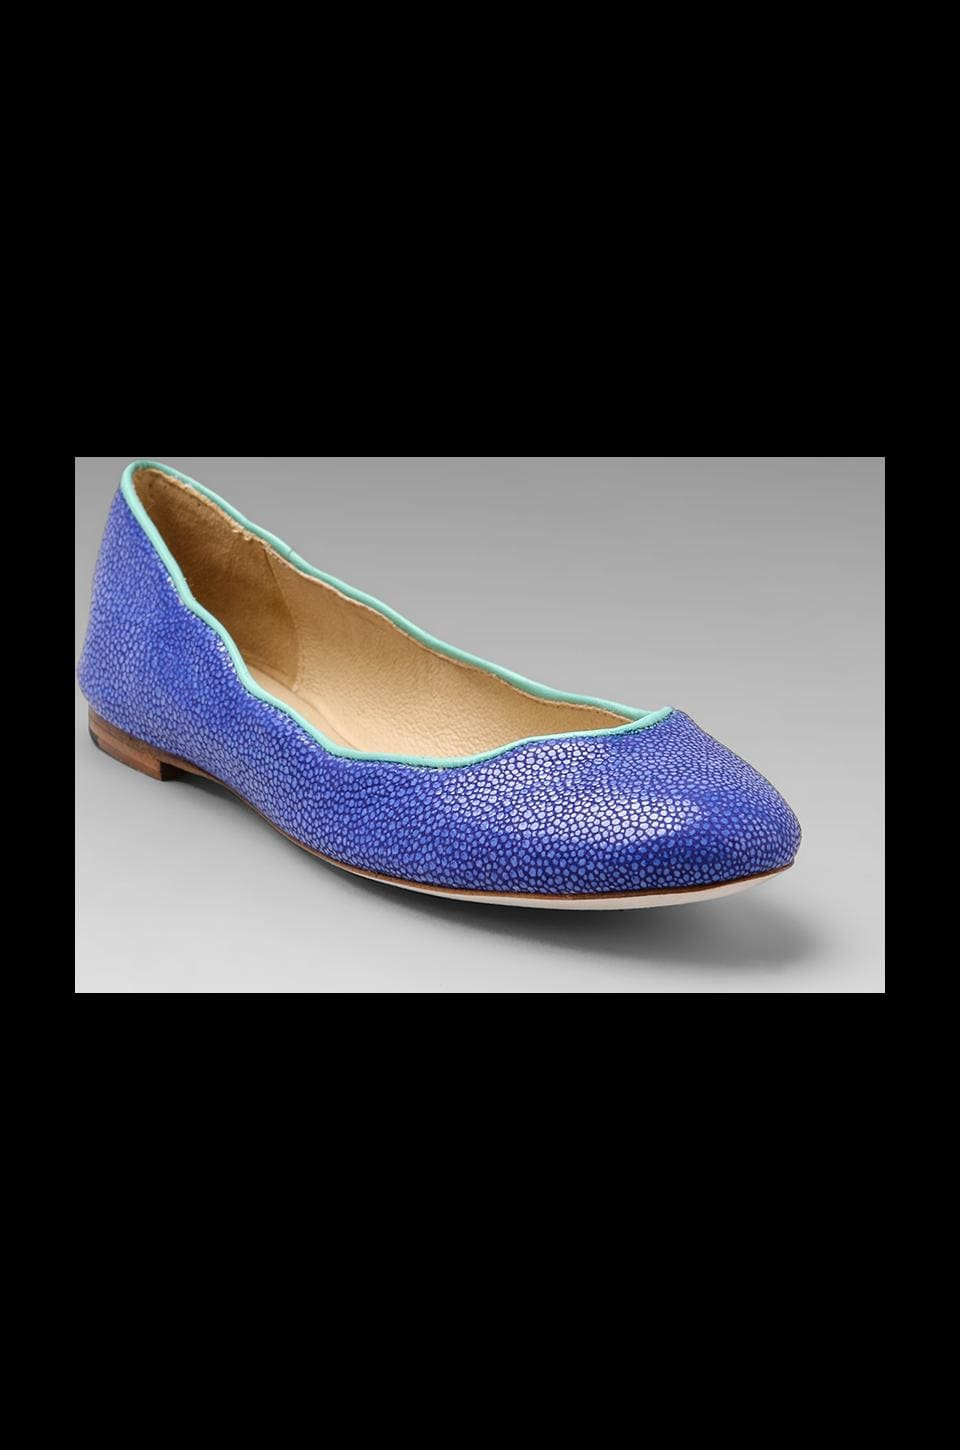 Juicy Couture Jailyn Flat in Bright Blue Stingray